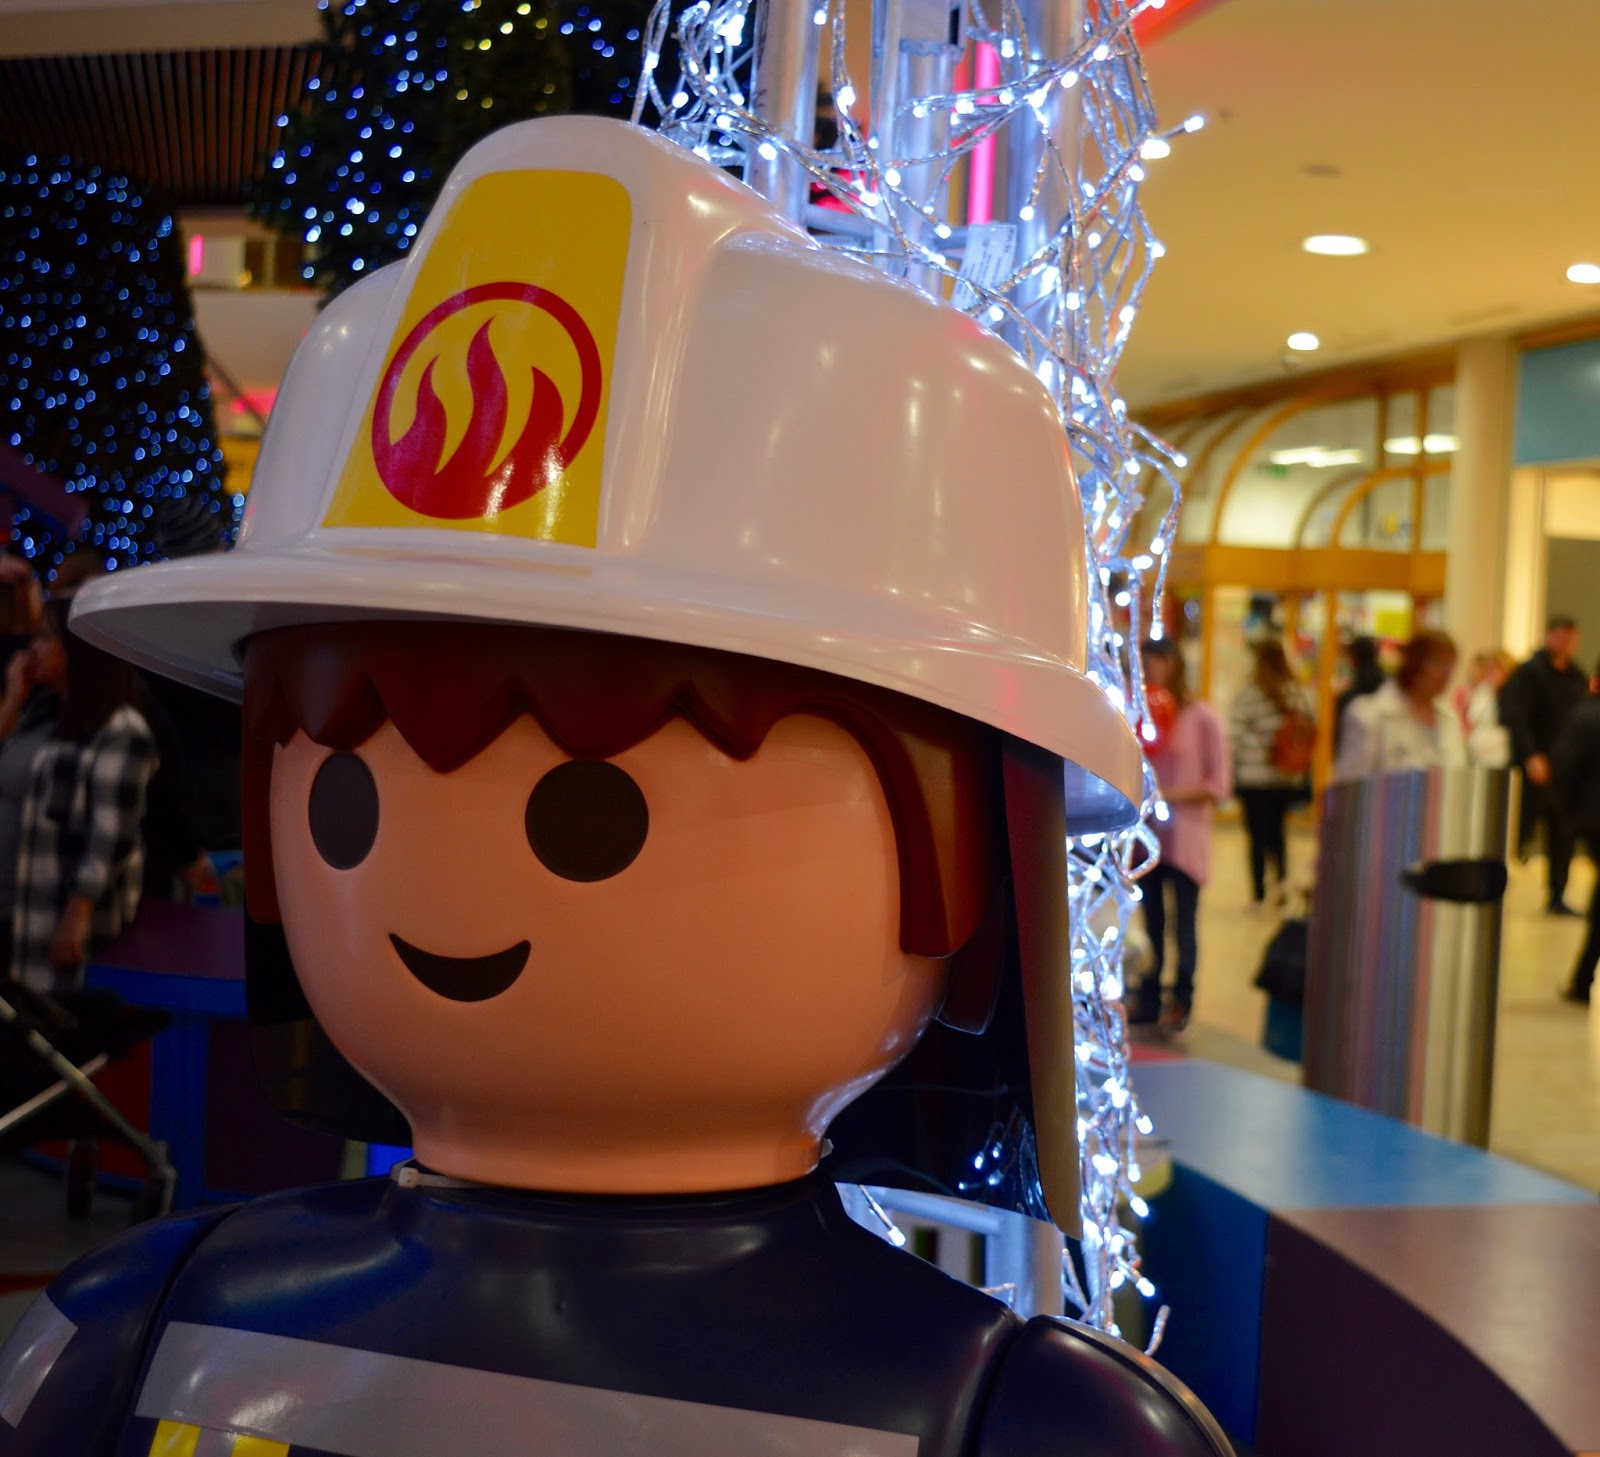 Visiting the FREE Santa's Grotto at intu Metrocentre | All You Need to Know including queue times, when's best to visit, your Playmobil Gift and photographs of Santa Claus - grotto entrance